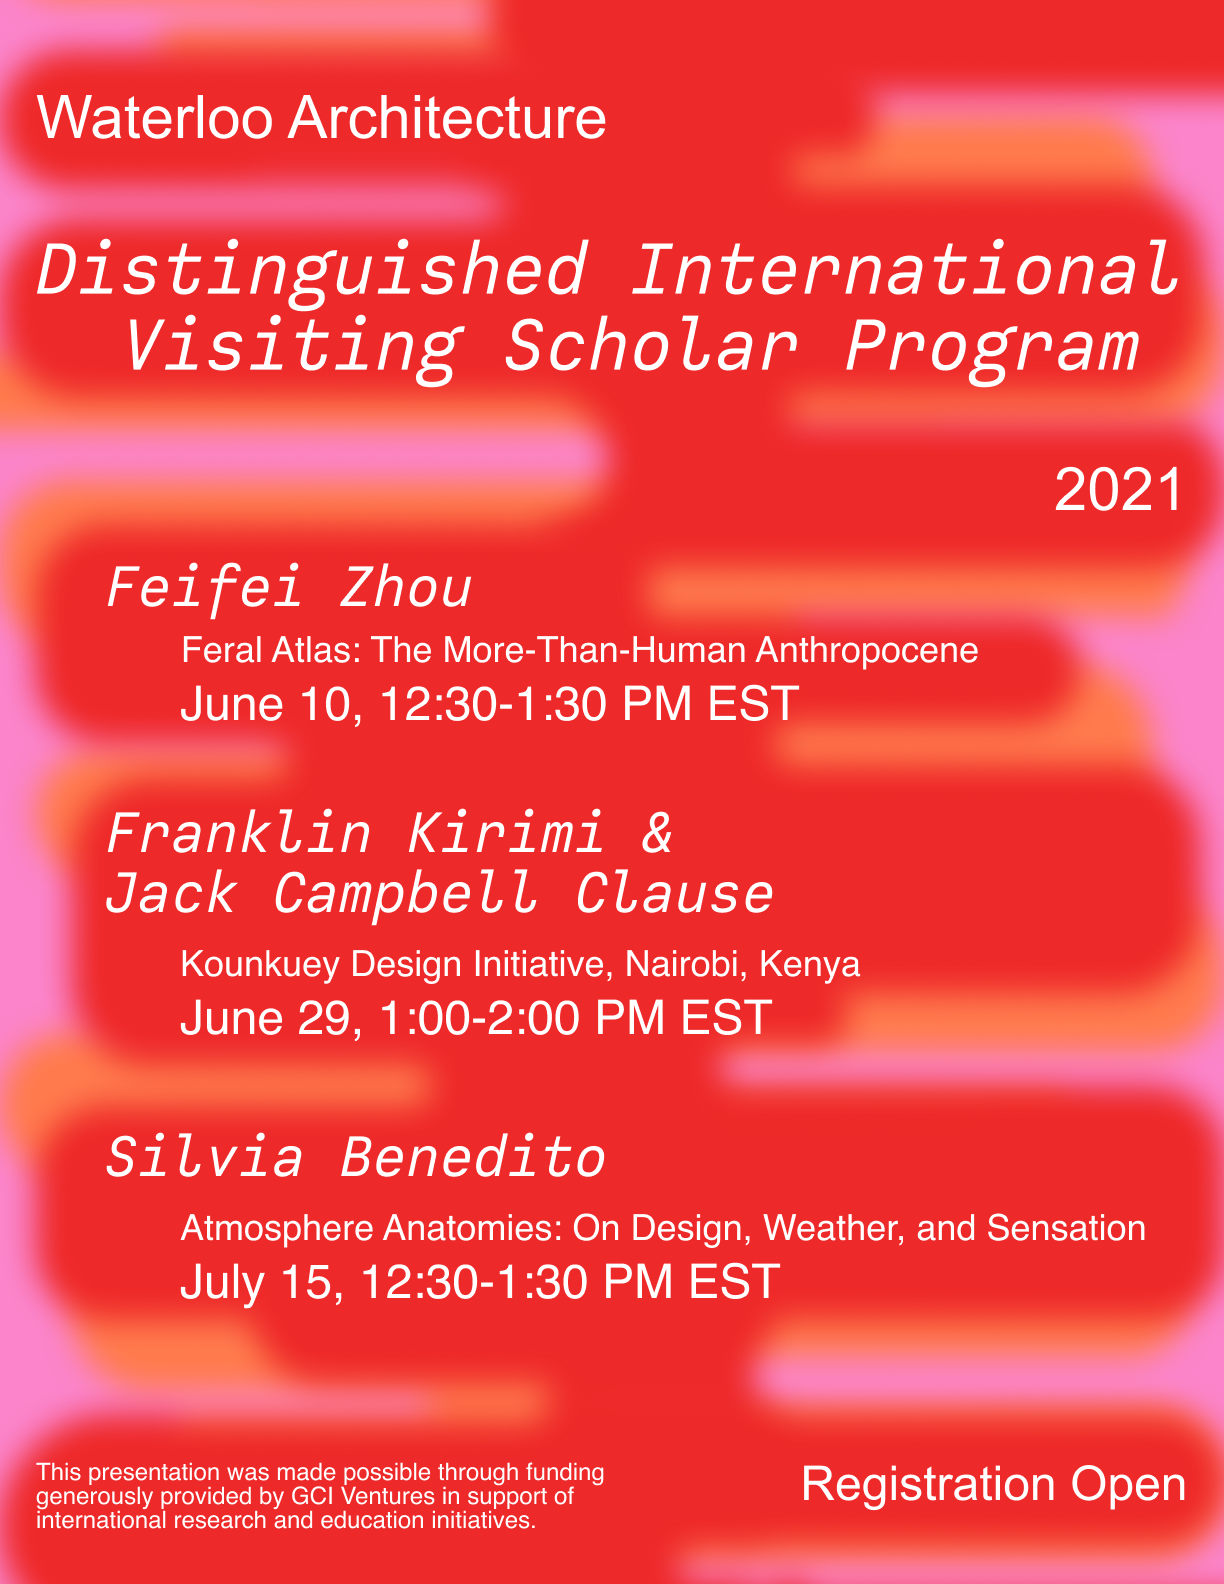 A vibrant red poster of the event series with all of the speaker information and dates in white font.